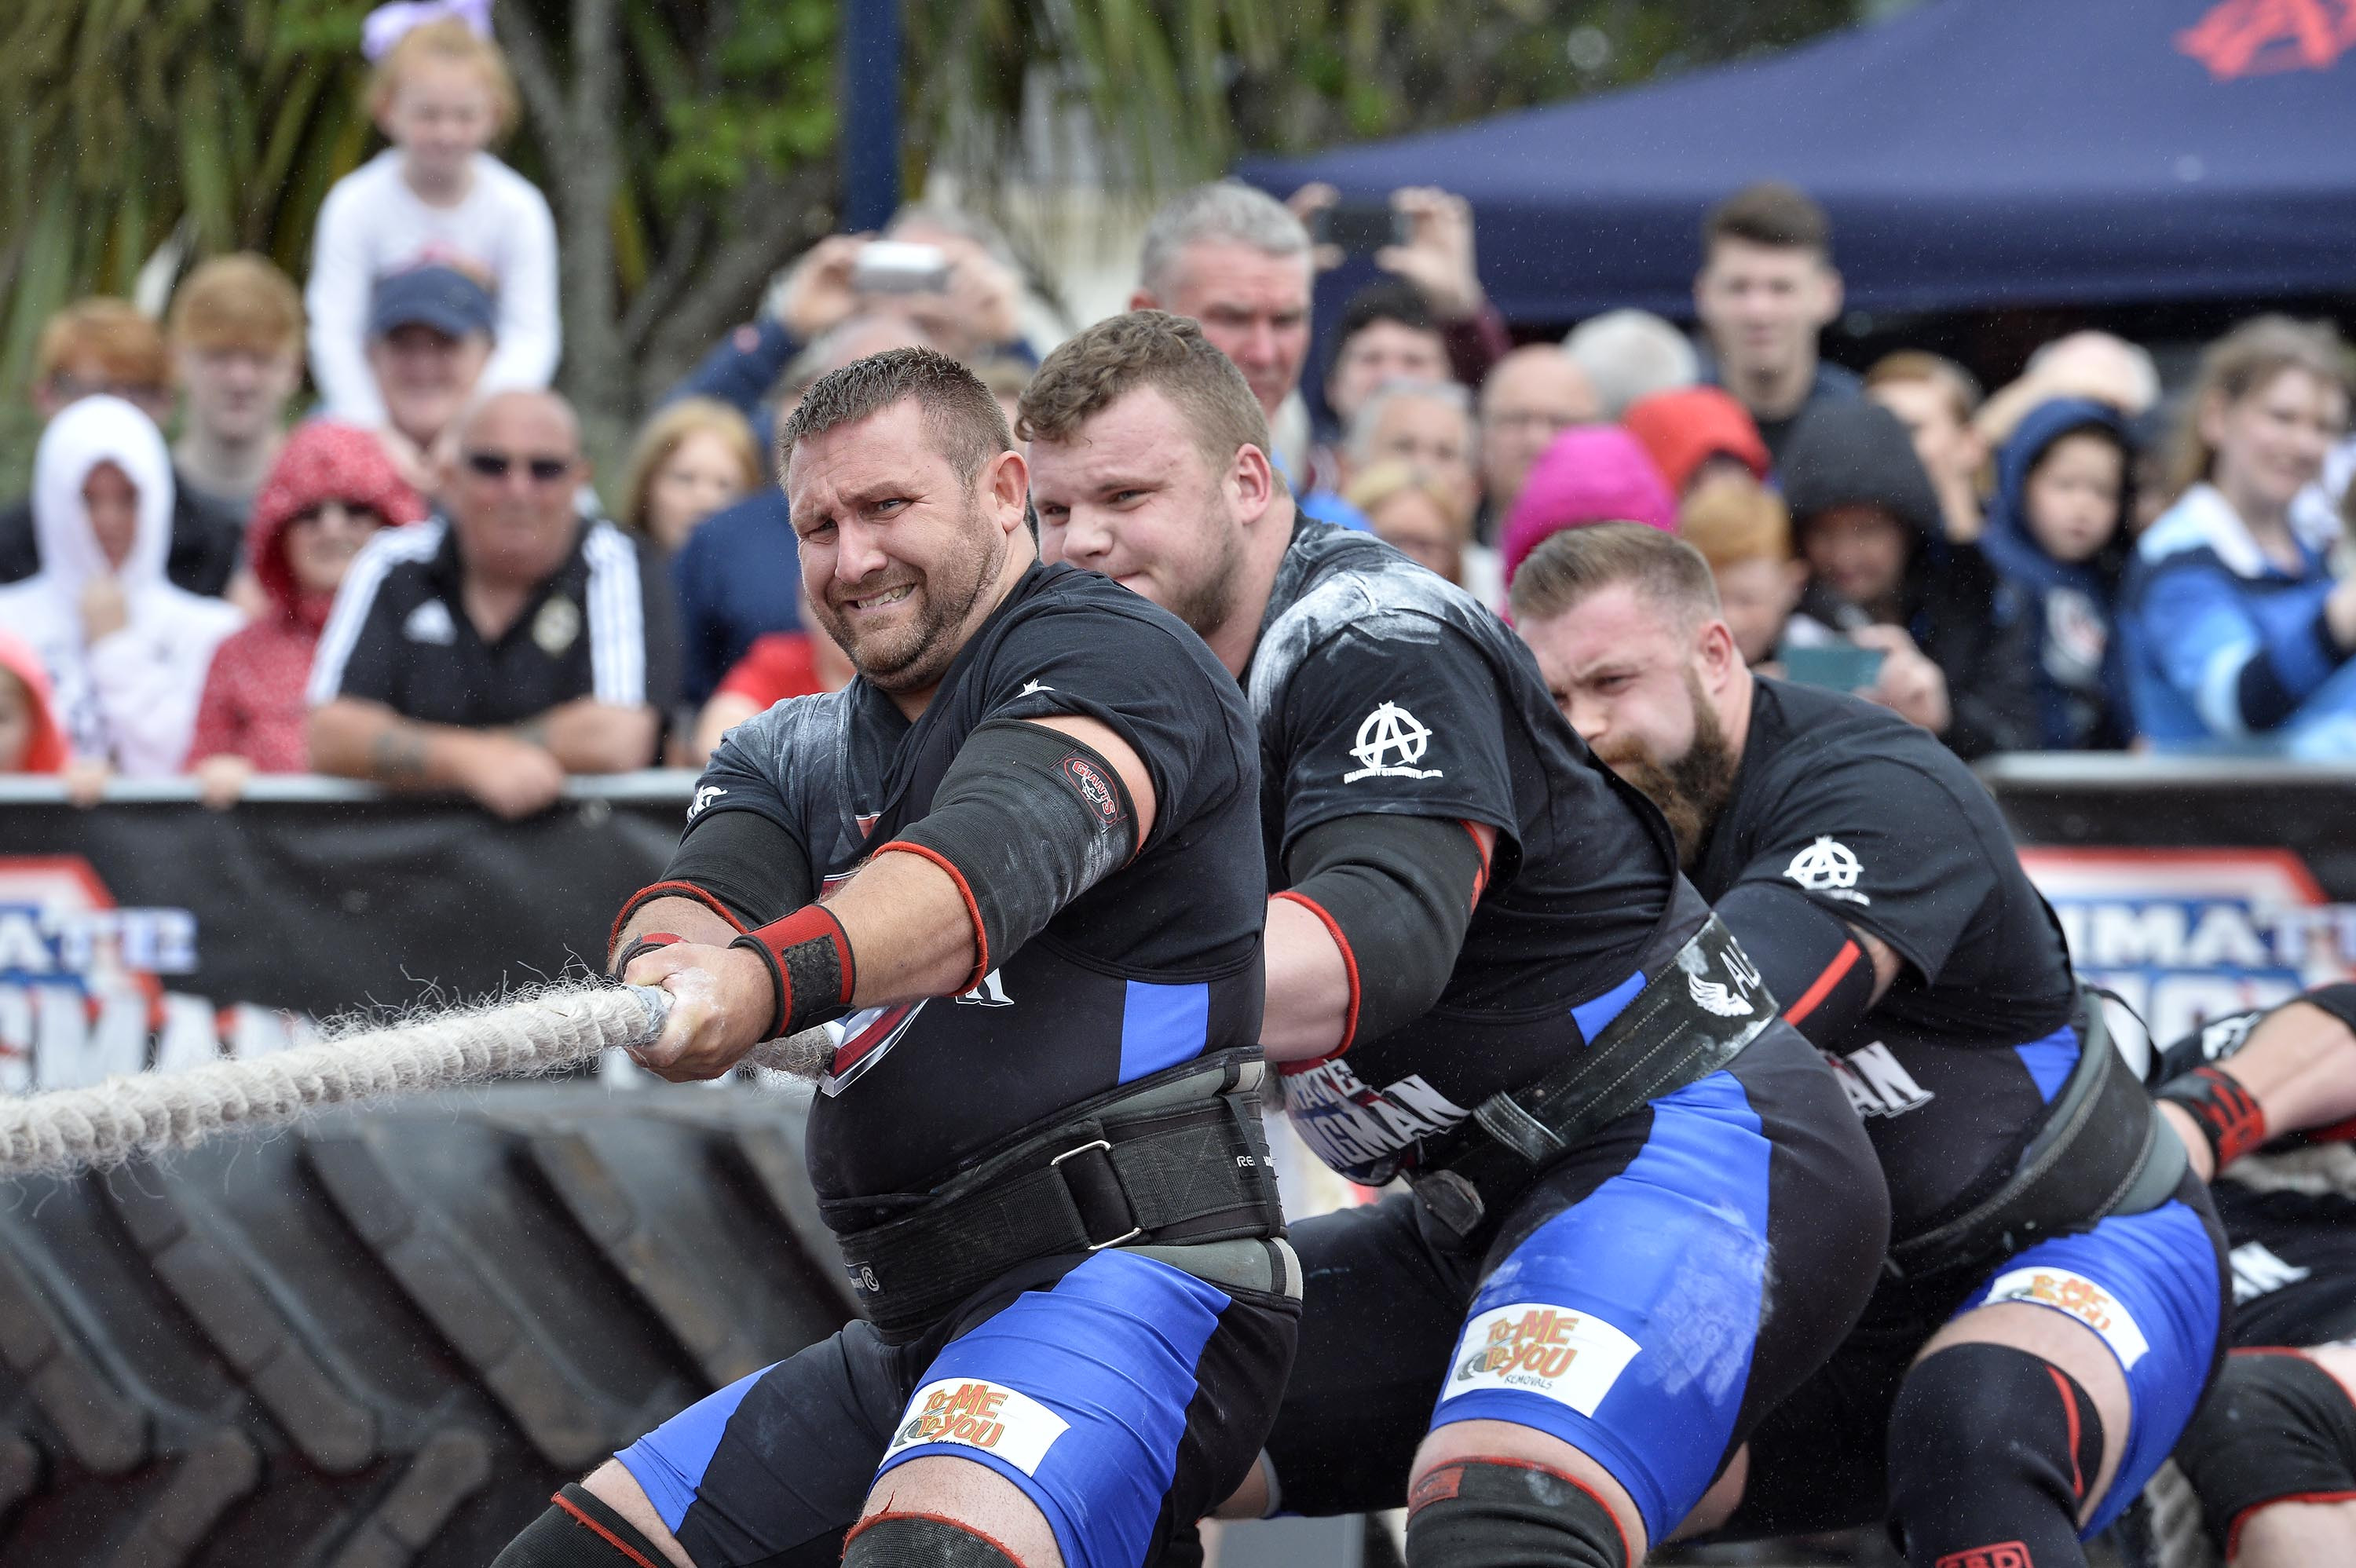 Team Scotland in action in the Tug Of War. Ultimate Strongman Battle of Britain.